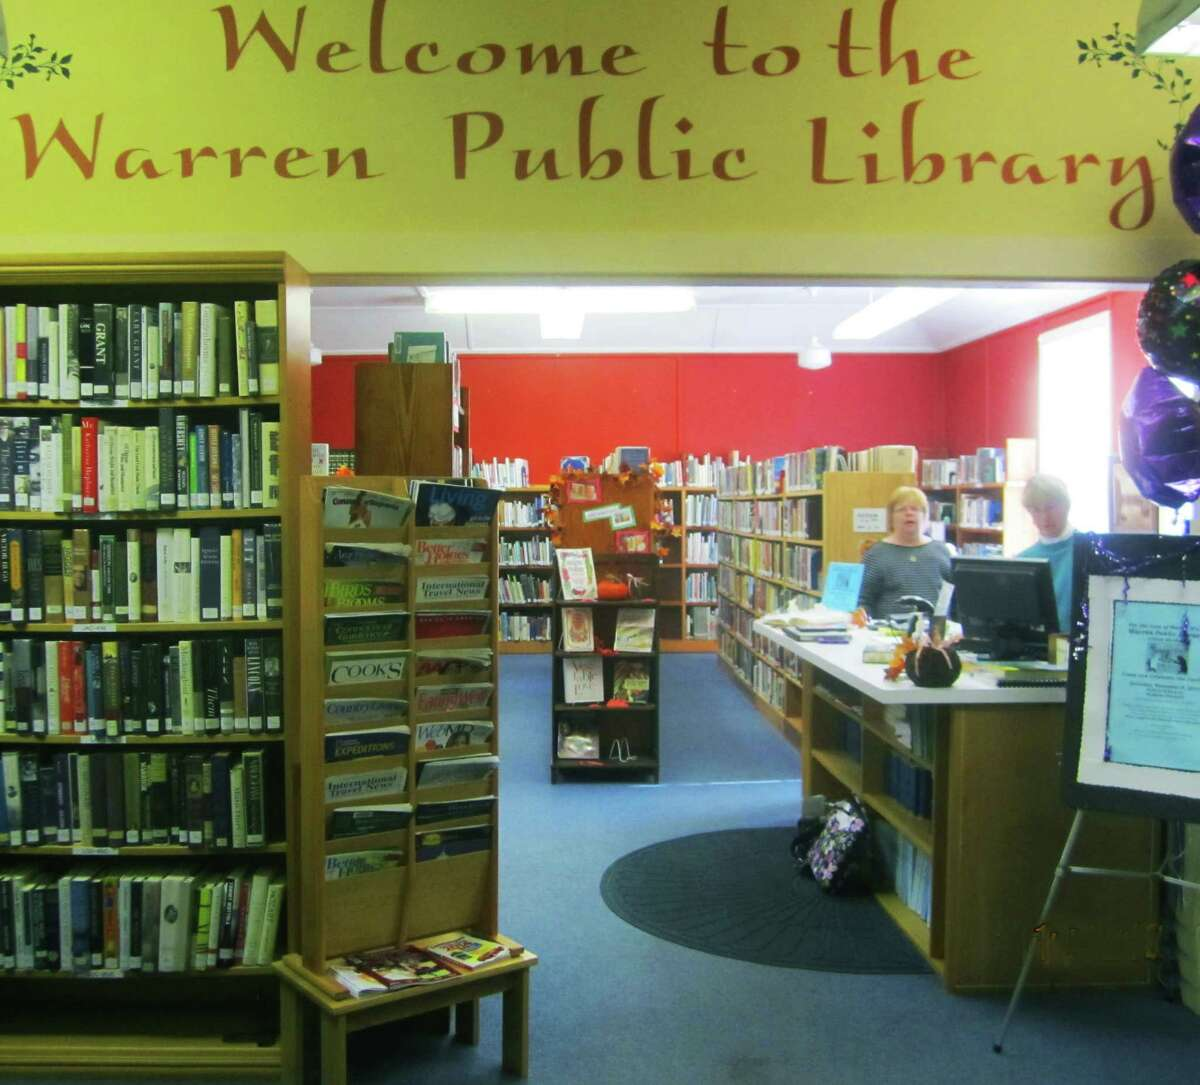 Warren Public Library offers a warm welcome to patrons as it celebrates its 100th anniversary in November 2014.